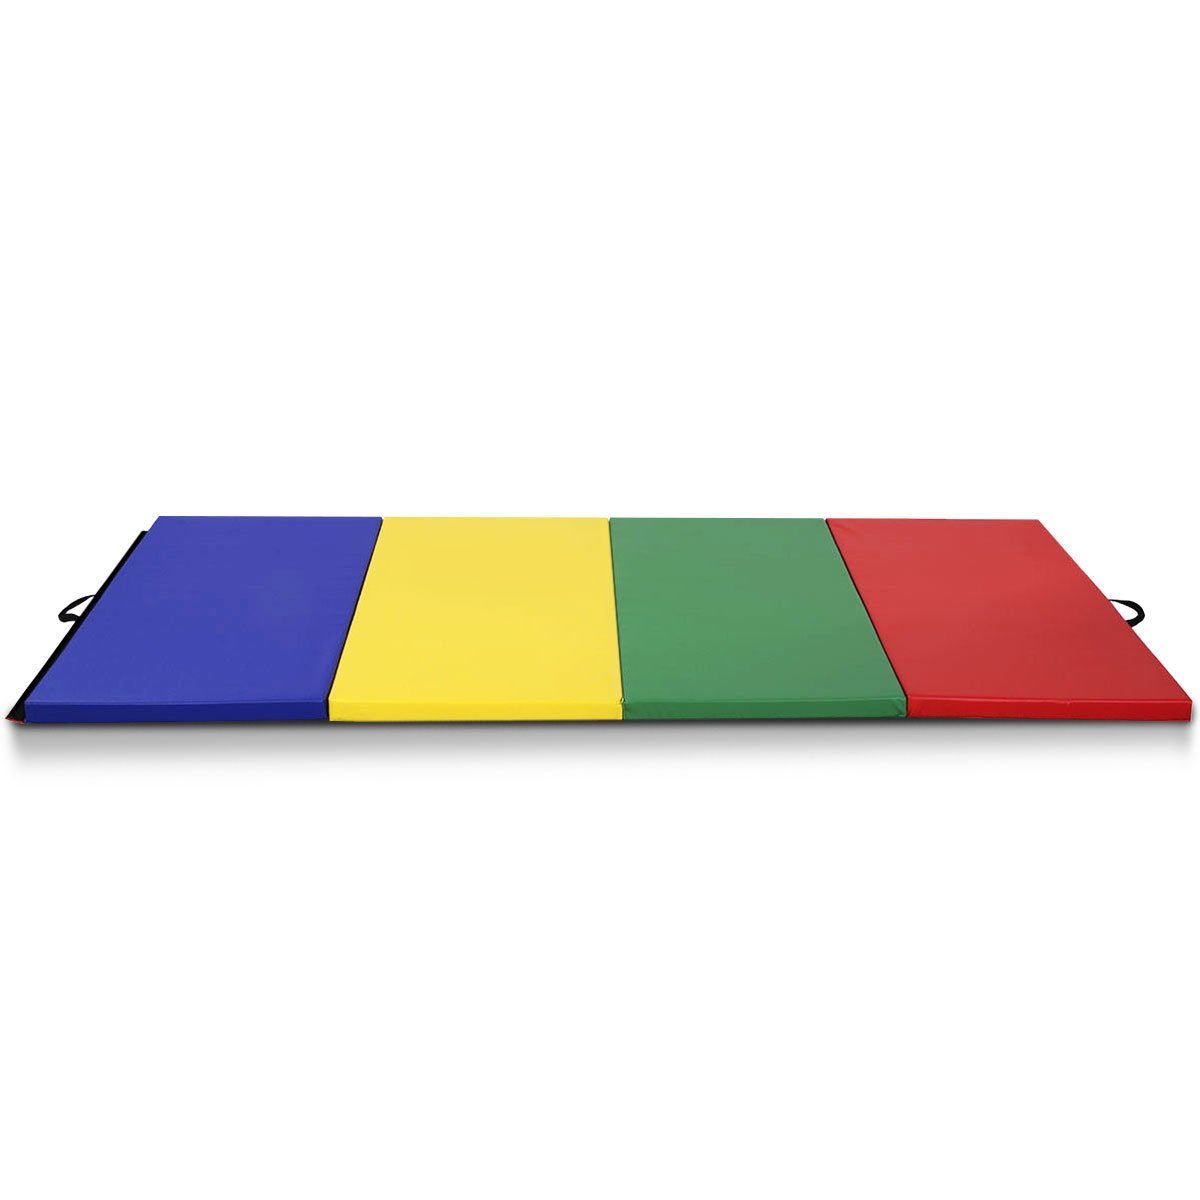 Giantex 4'x8'x2 Gymnastics Mat Folding PU Panel Gym Fitness Exercise (Multicolor)